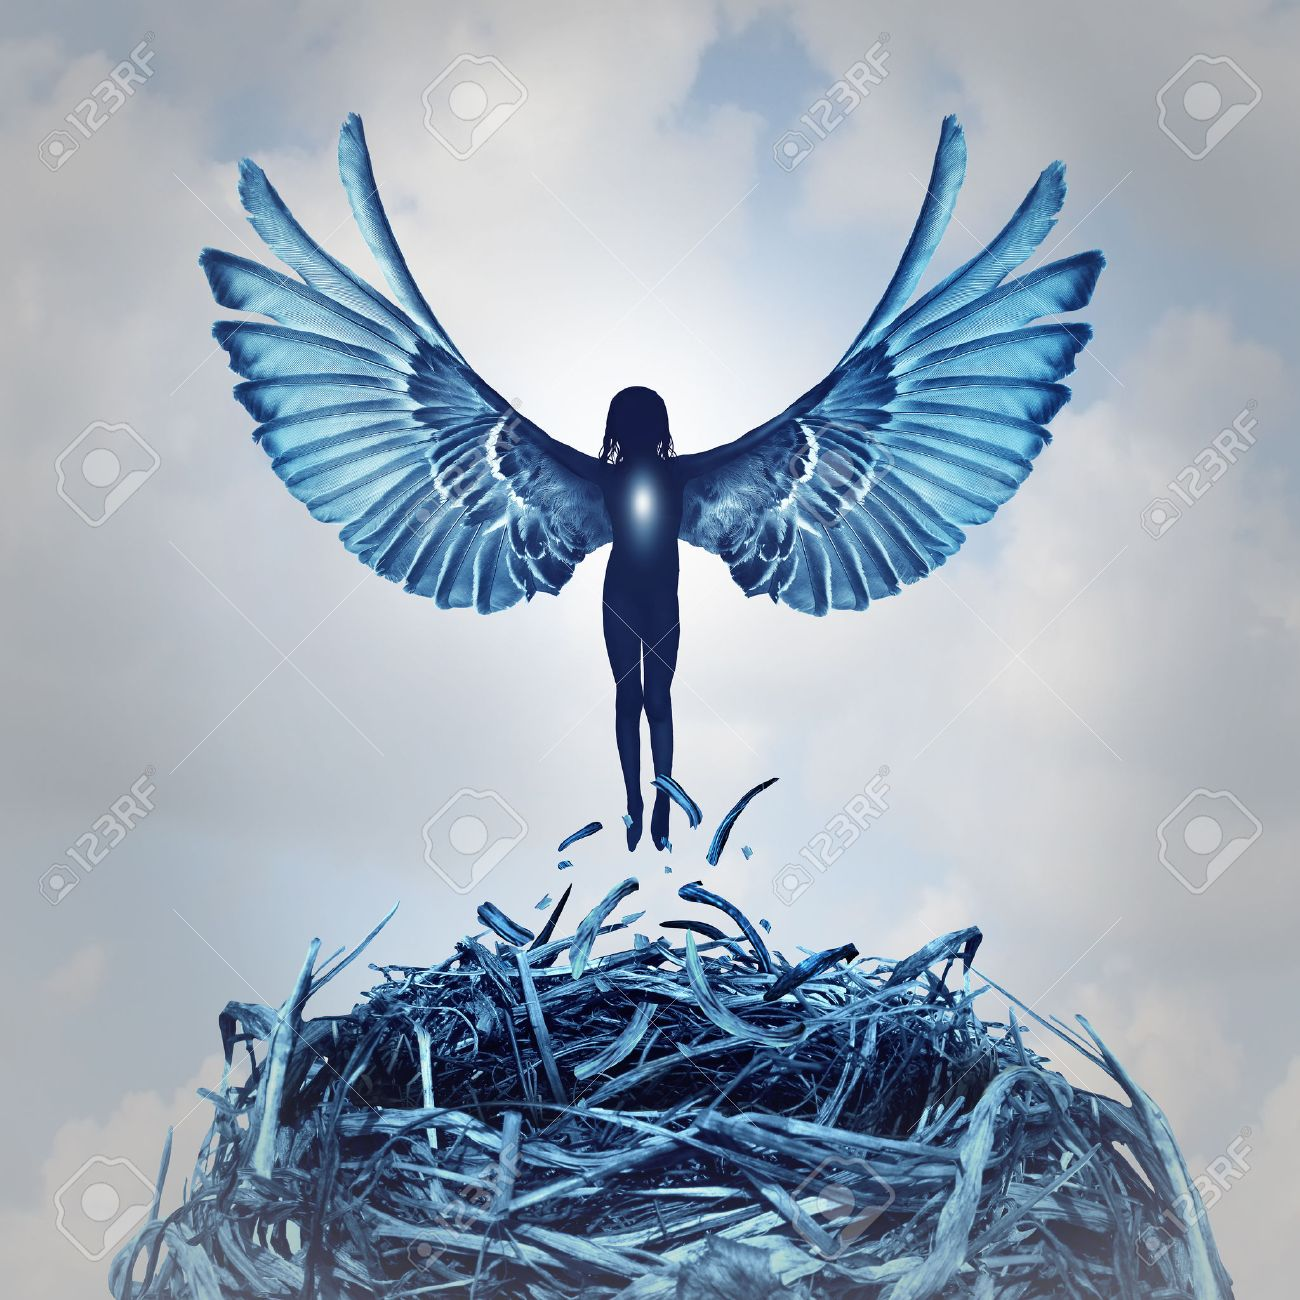 angel stock photos royalty free angel images and pictures